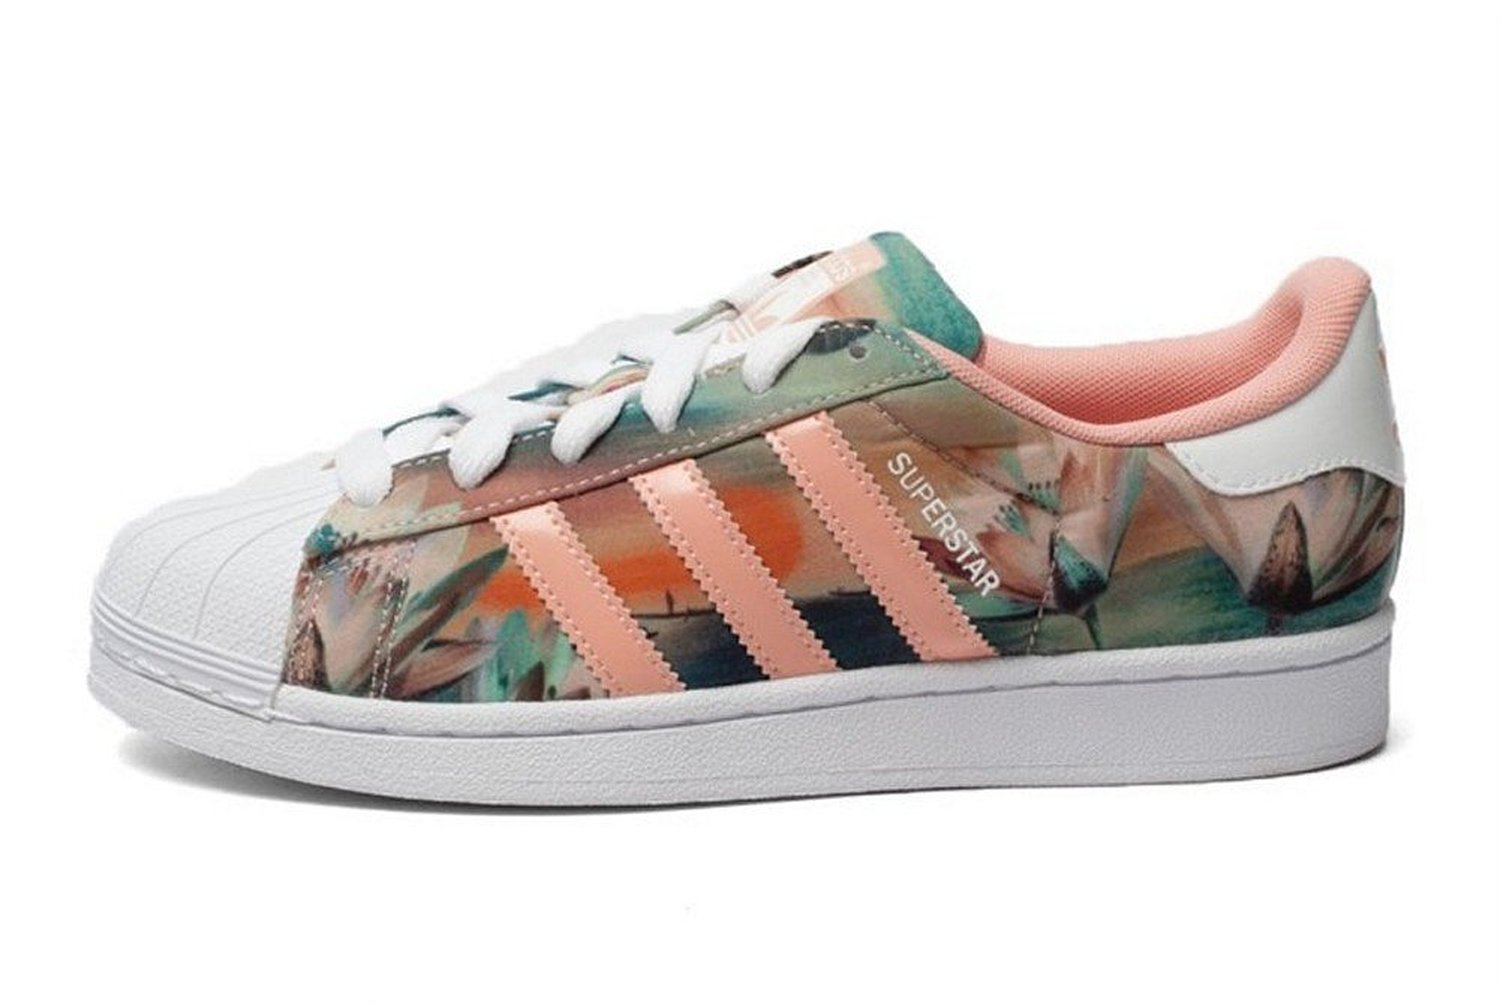 Adidas Originals Superstar womens (USA 6) | Amazon.com